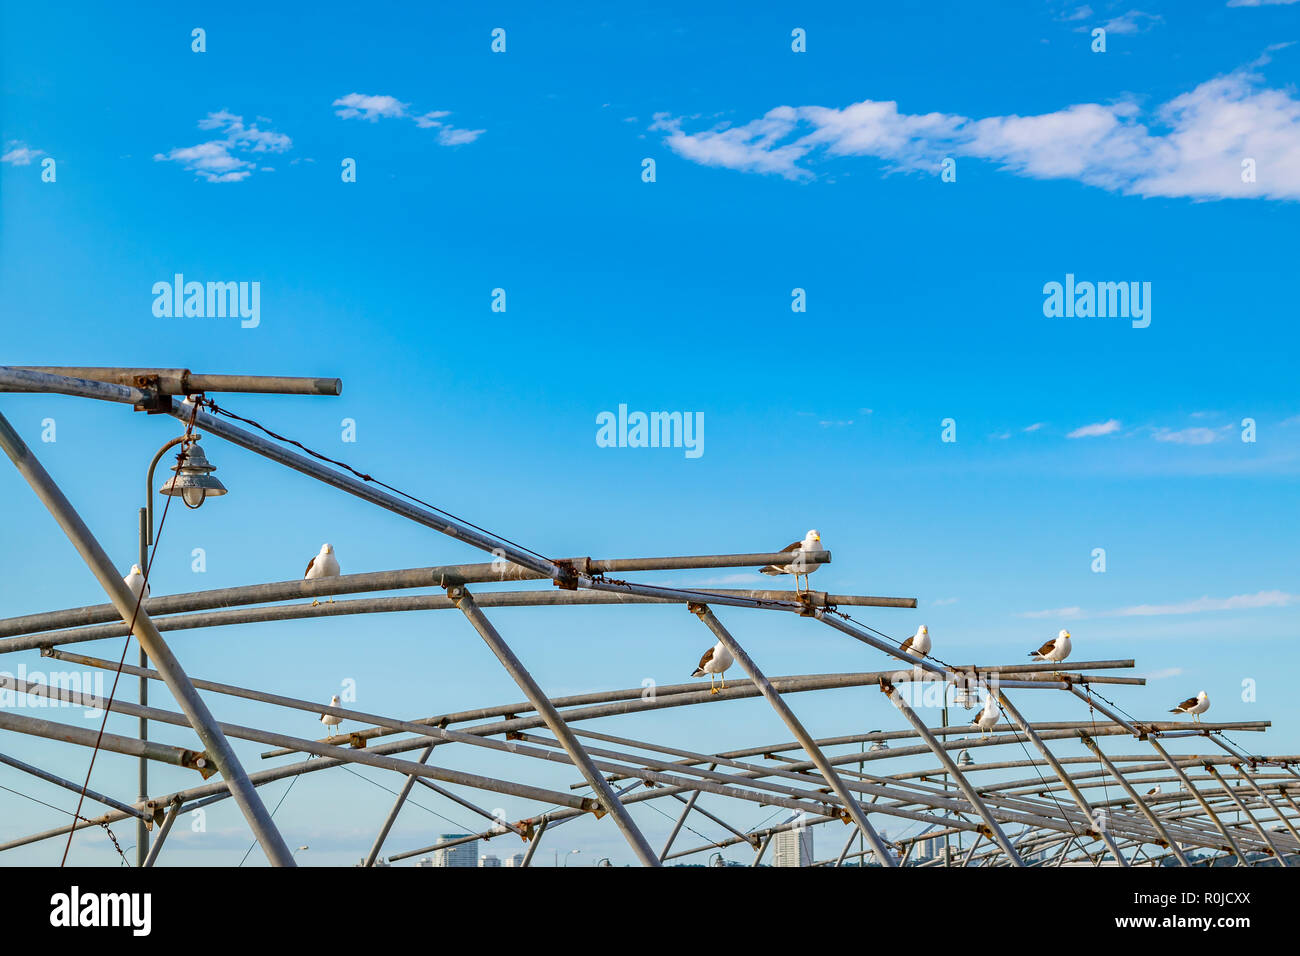 Seagulls standing at iron structure at port of punta del este city, Uruguay - Stock Image